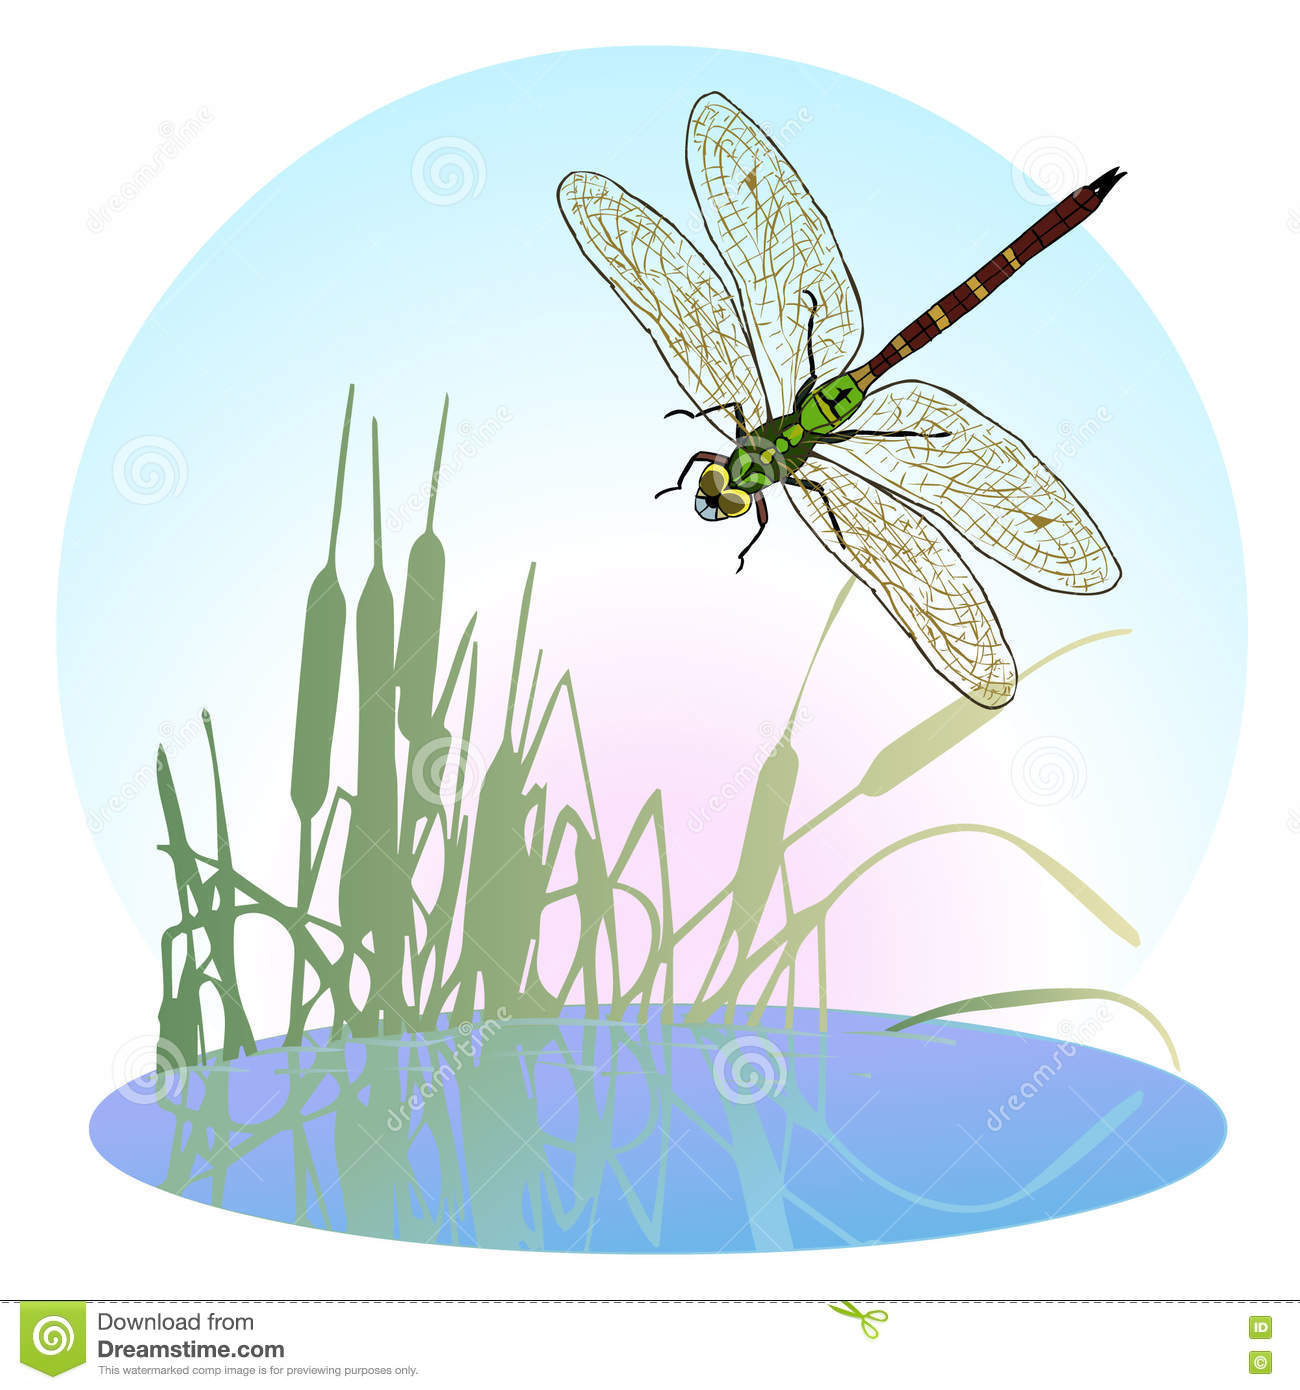 Dragonfly Flying Over A Pond Overgrown With Reeds. Life Is Flying.